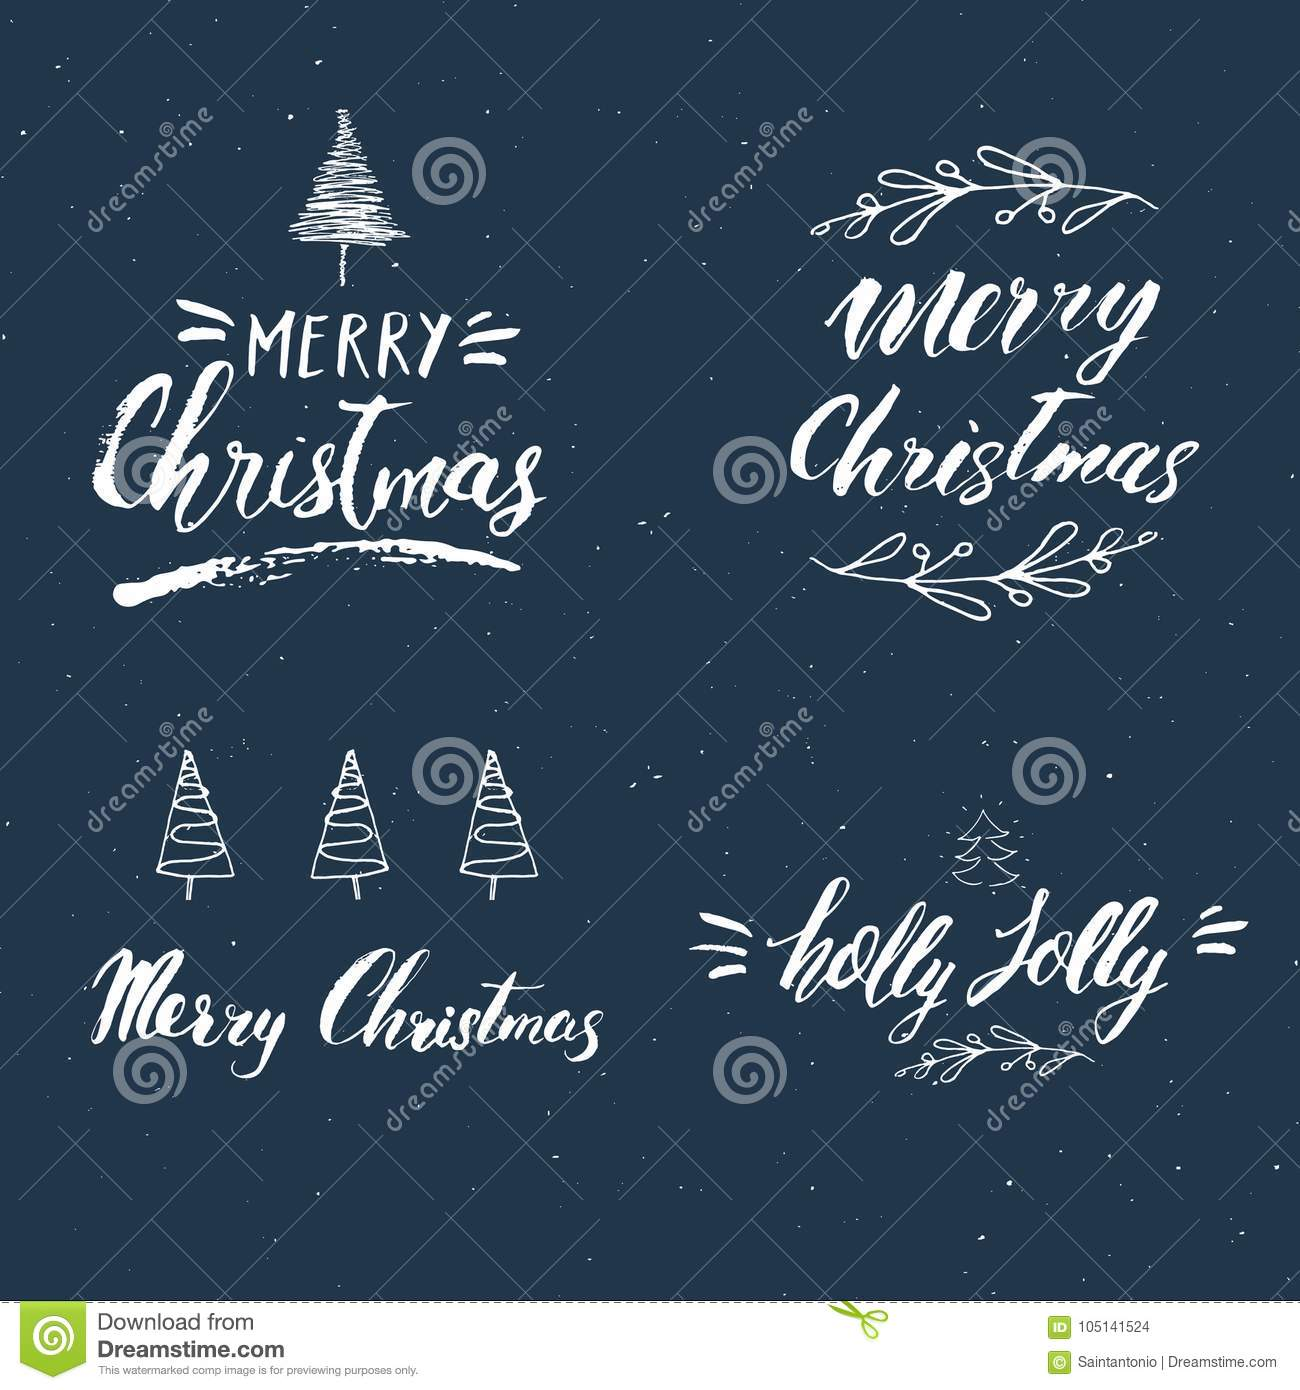 Merry Christmas Calligraphic Letterings Set Typographic Greetings